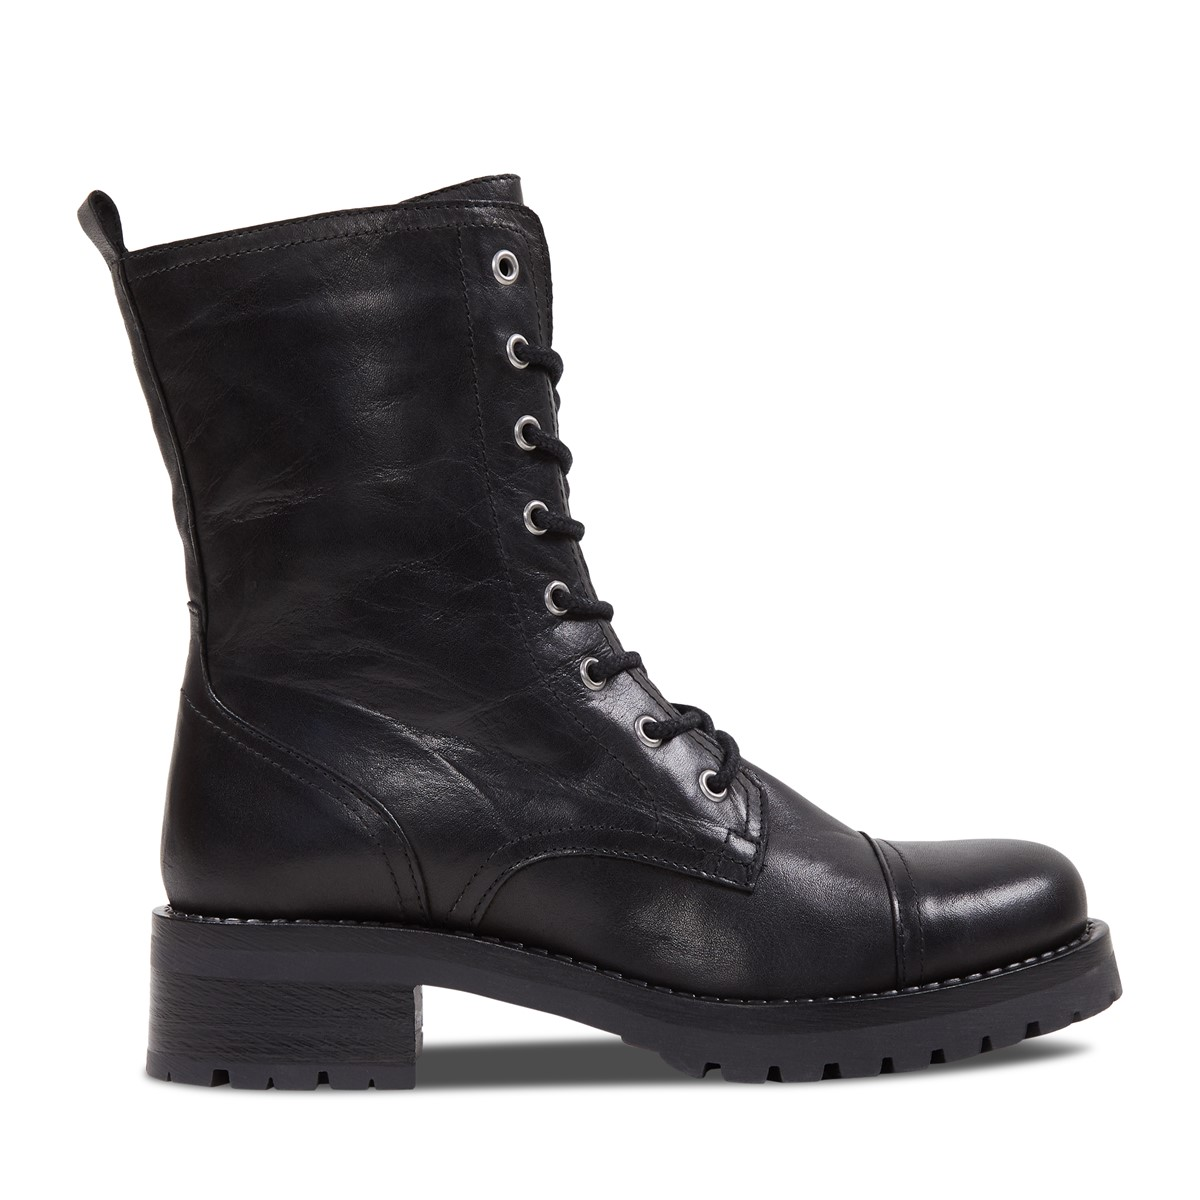 Women's Billie Boots in Black